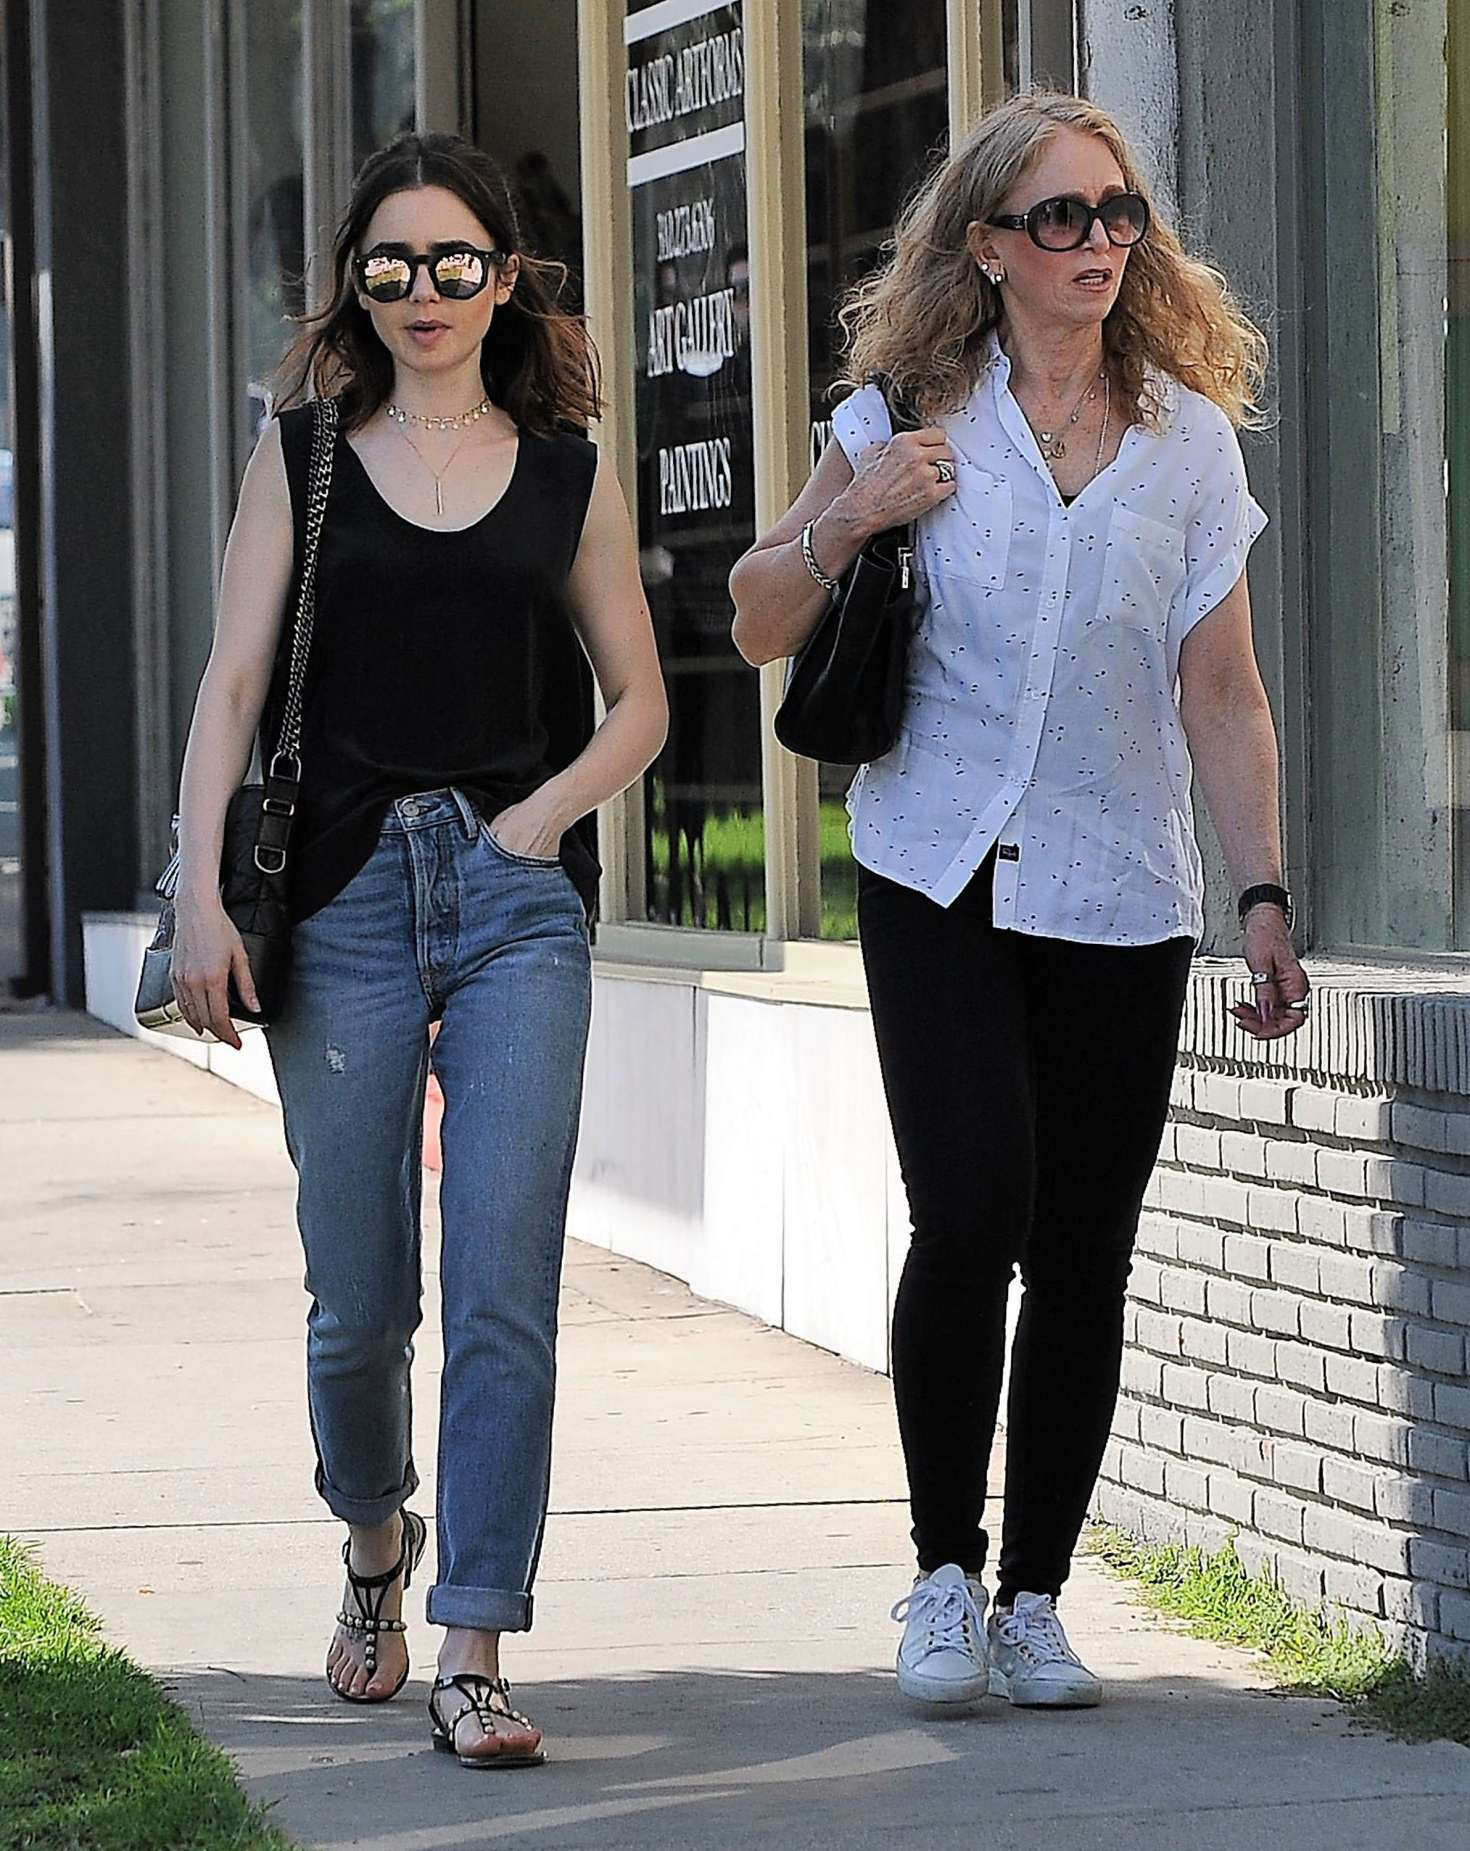 Lily Collins And Her Mother Jill Tavelman Out In West Hollywood 01 Gotceleb Inside the west hollywood antique store waverly on doheny, near the troubadour theater, jill tavelman collins is stationed under a framed image of the peanuts comic strip character lucy van. lily collins and her mother jill